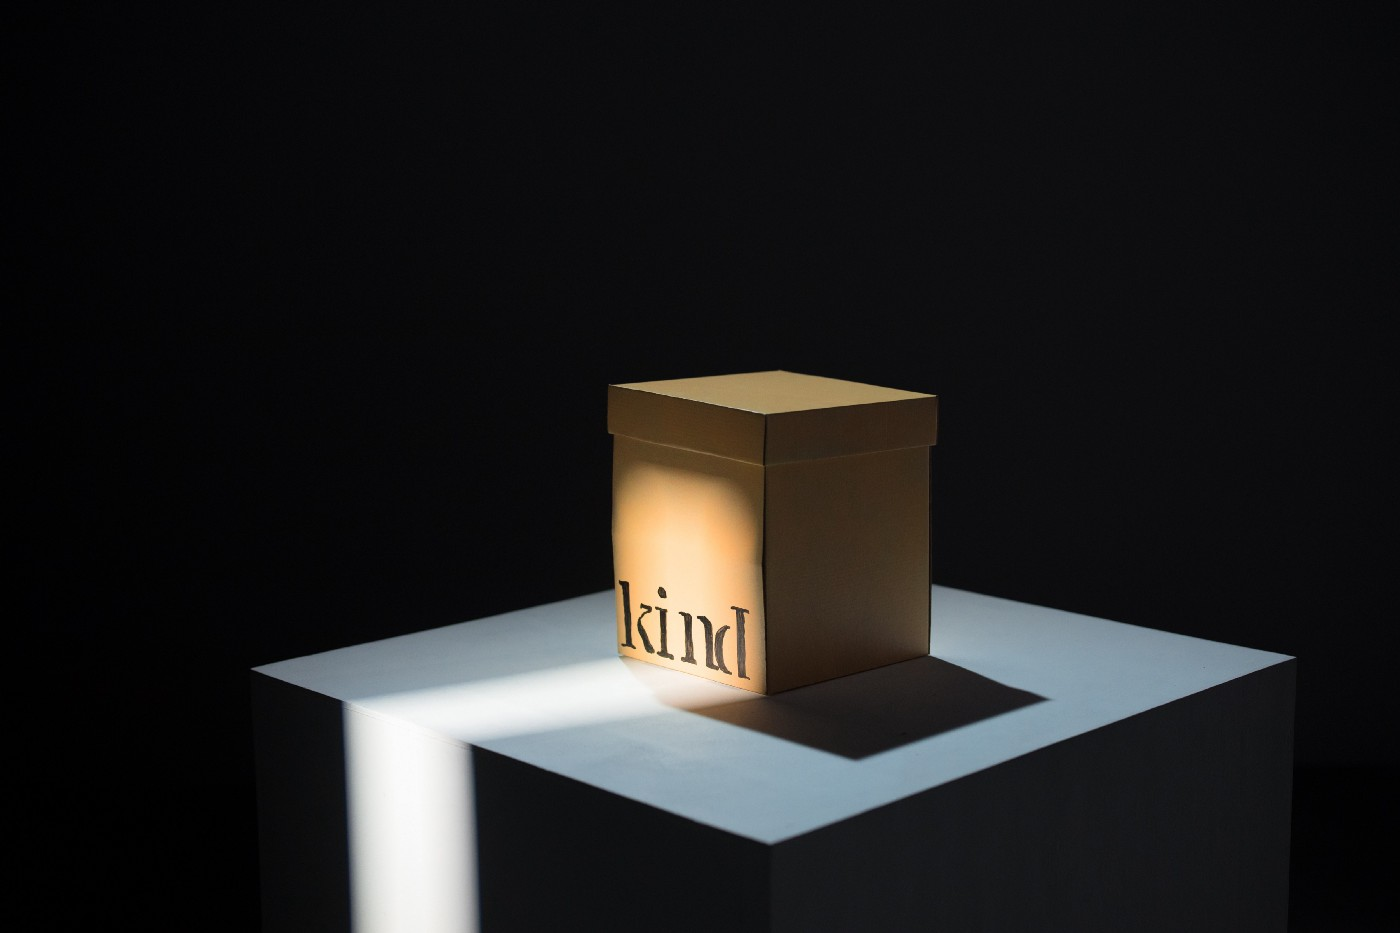 Square brown paper box sitting on a square surface. The box sits in a gleam of light and has the word 'kind' written on it.